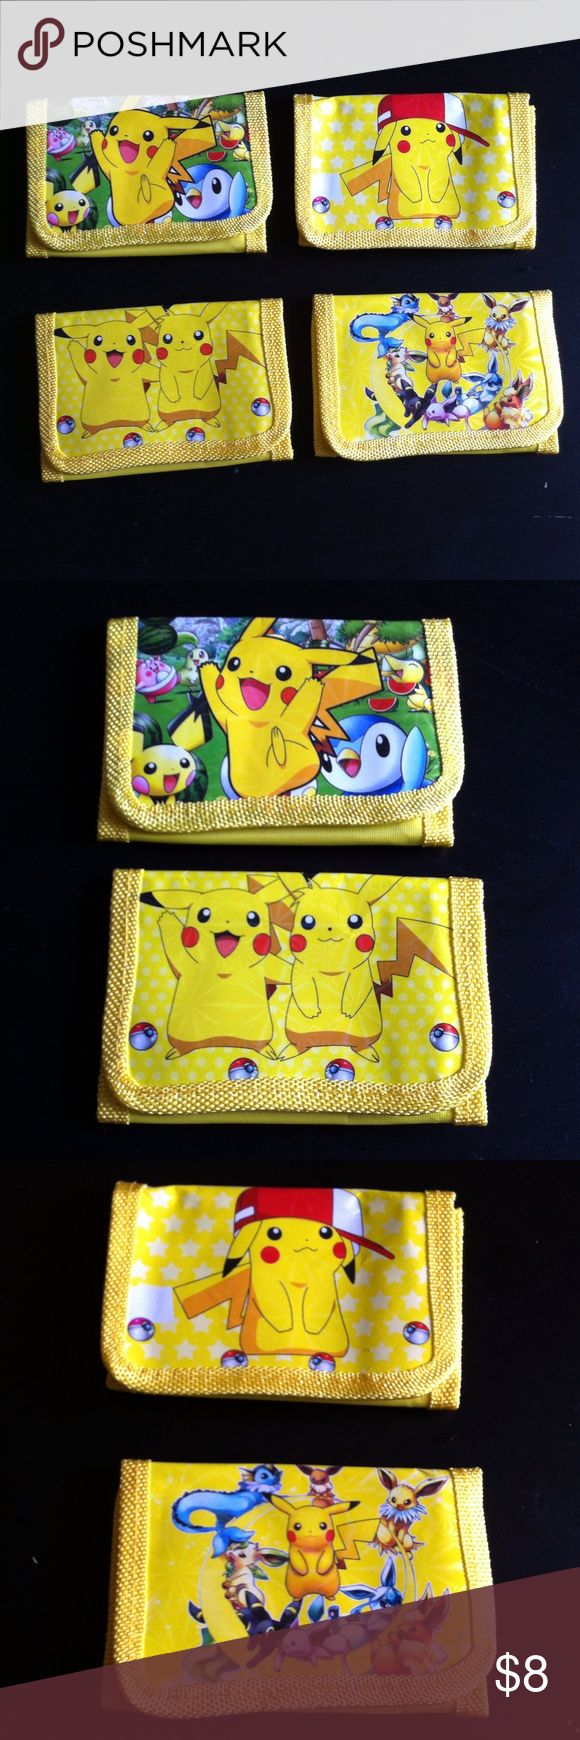 Pokemon wallet All new. I have 4 designs available. It's a pickachu wallet. It has a zipper for bills and to side pockets for cards. Selling 2 x 8.00. No trades or Pp thanks Other